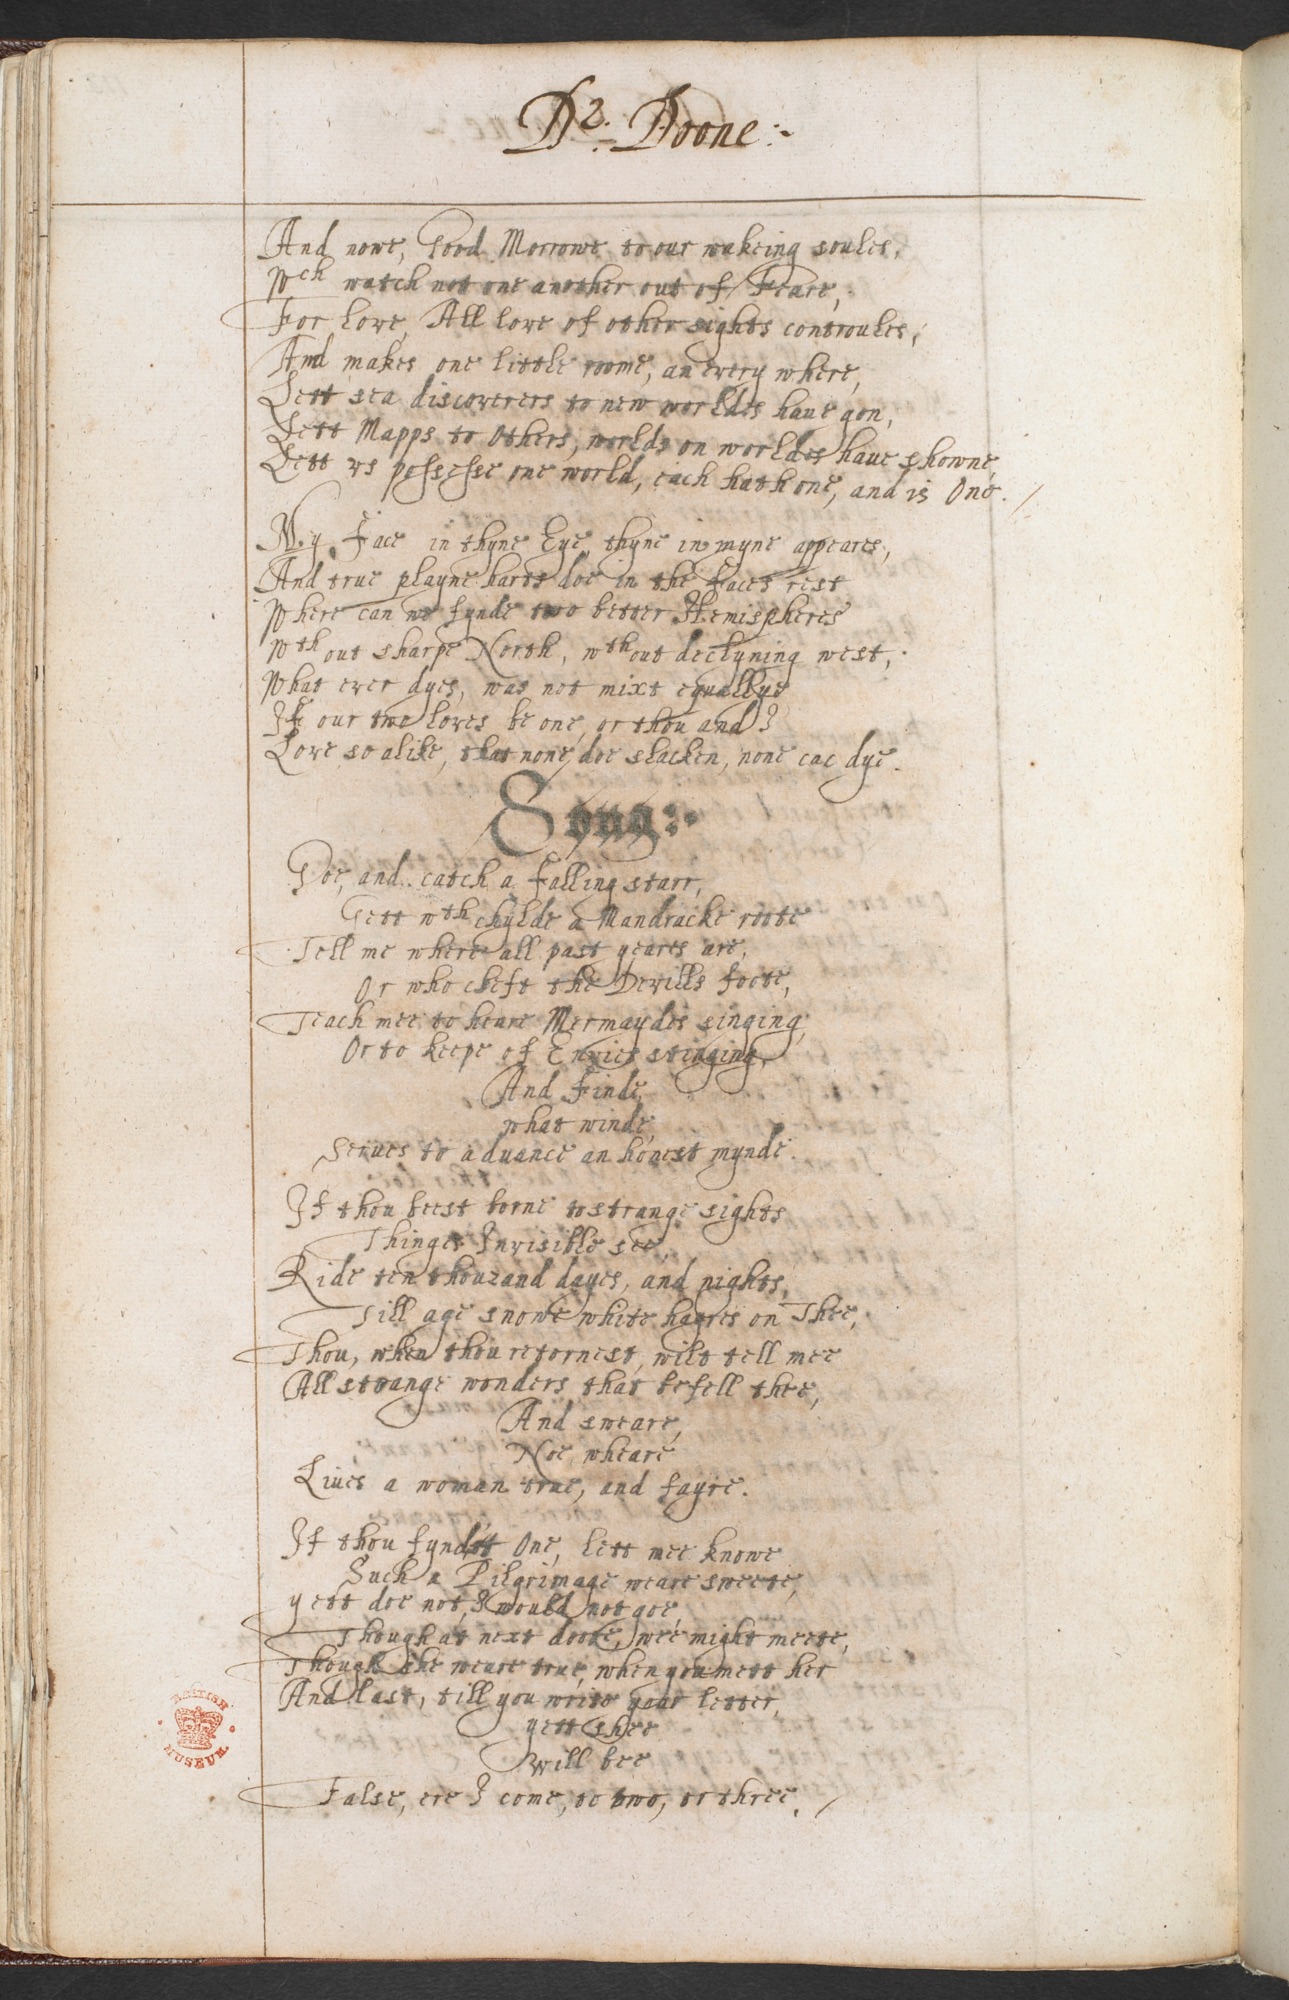 Works by John Donne and Ben Jonson in the Newcastle Manuscript